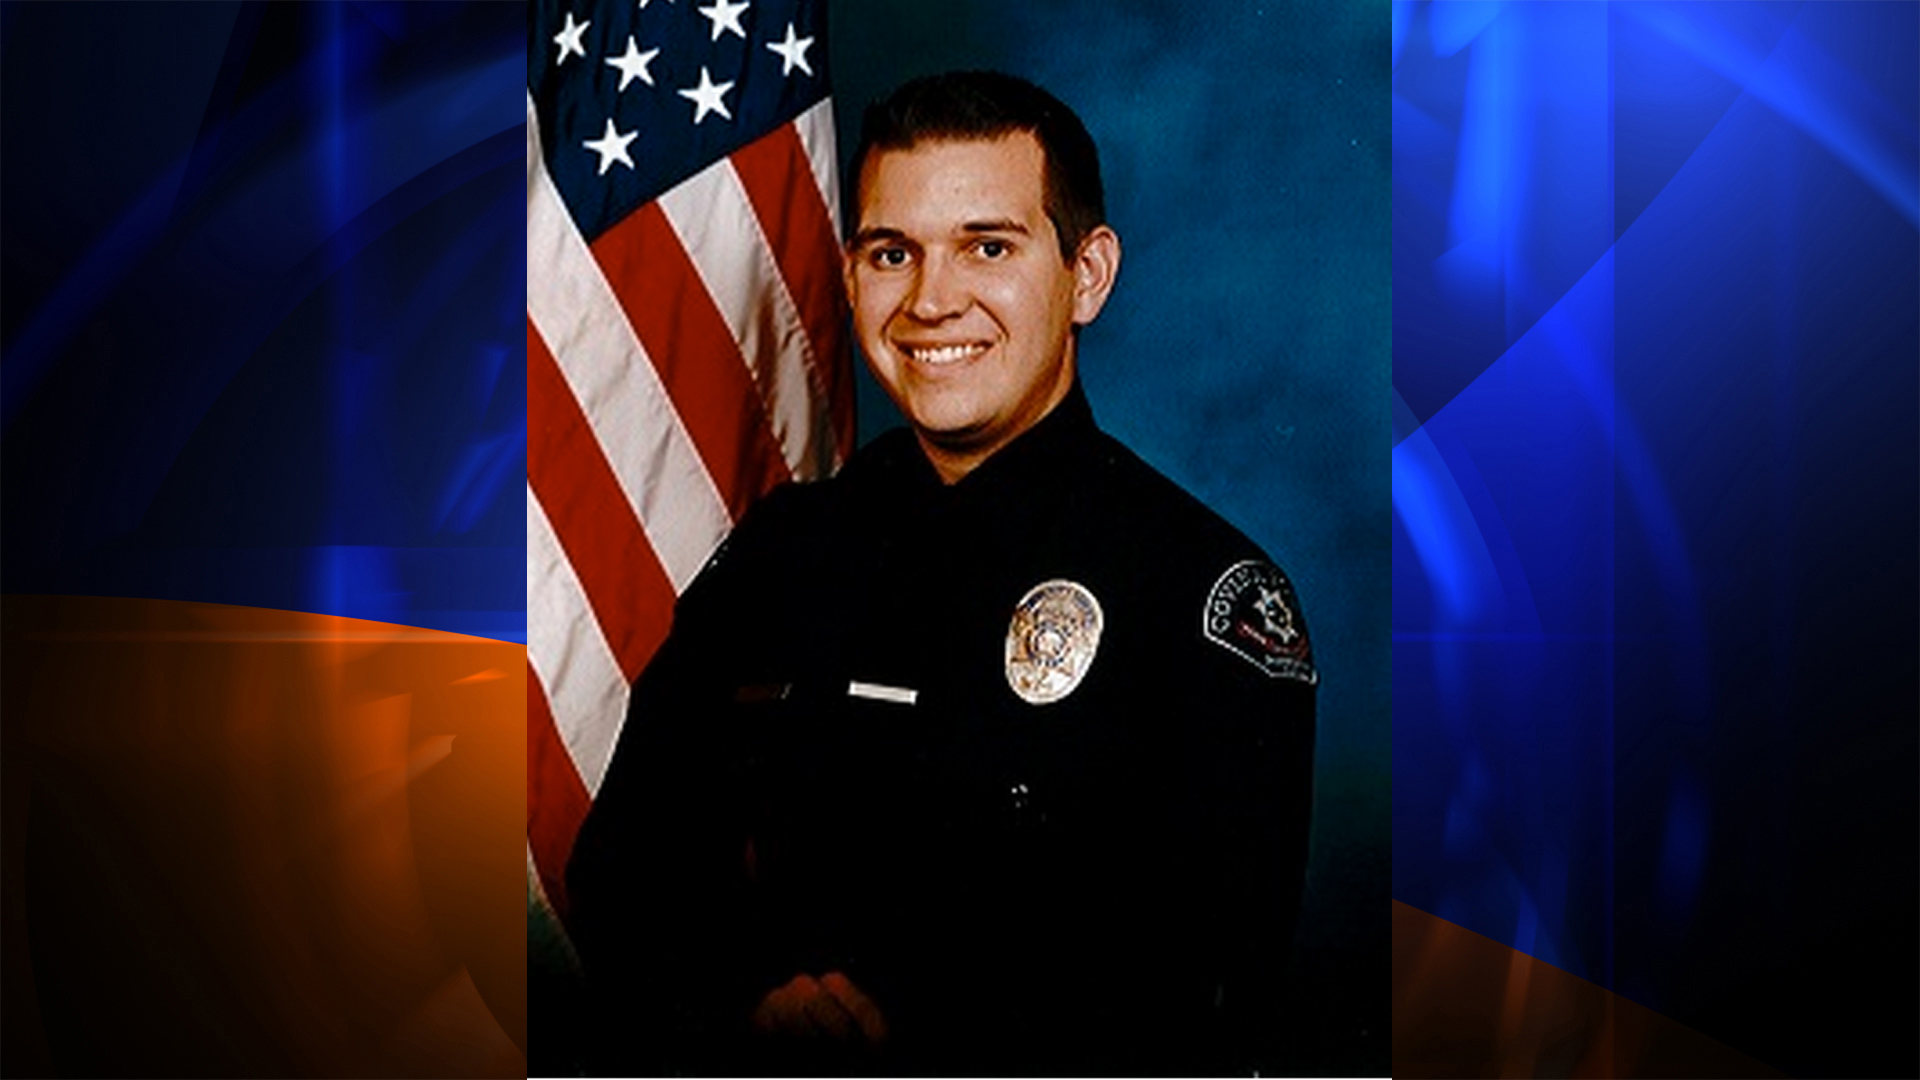 Police Officer Jordan Jeffrey Corder | Covina Police Department, California